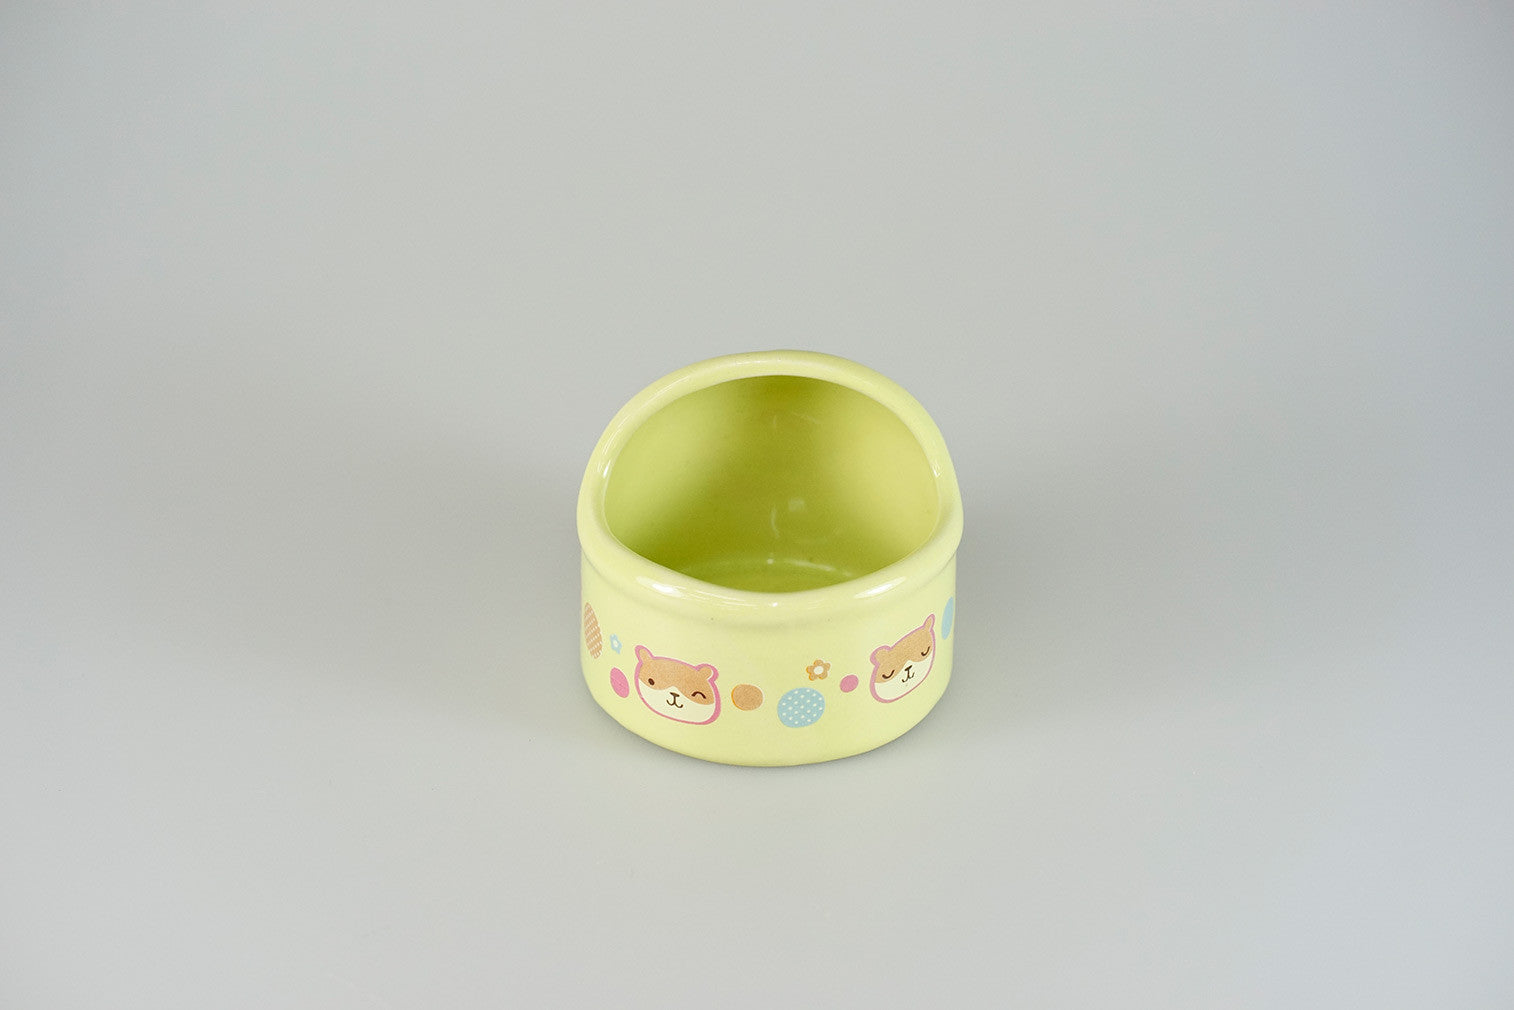 Jolly Dome Feeding Bowl